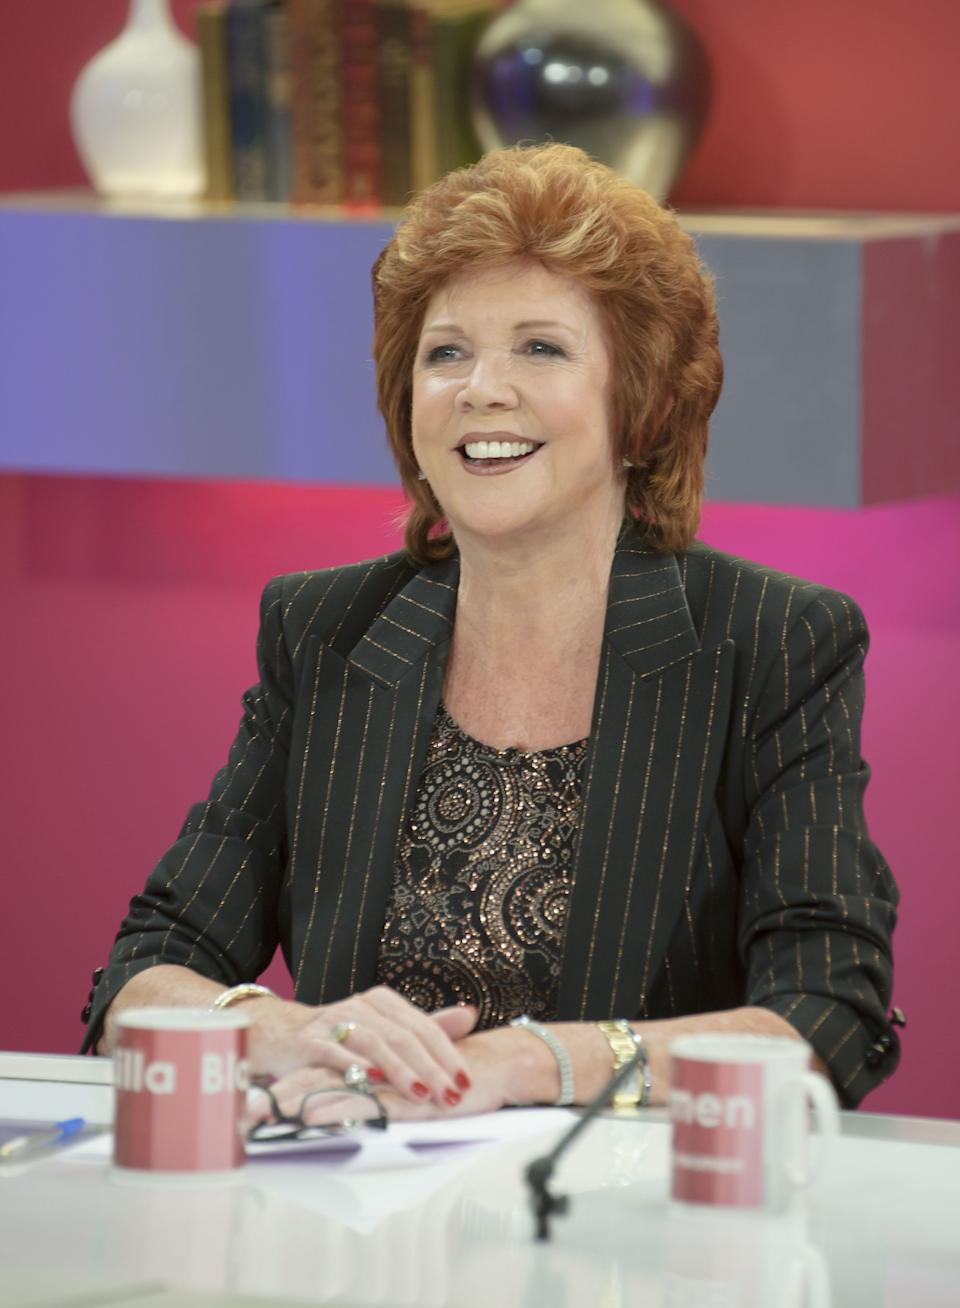 While the late Cilla will be remembered for her huge TV hits Blind Date and Surprise Surprise, her last regular TV gig was actually as a Loose Woman.<br /><br />She appeared first as a guest anchor in 2009 and was invited back as a regular panelist between 2010 and 2011, returning for a final appearance in 2014.